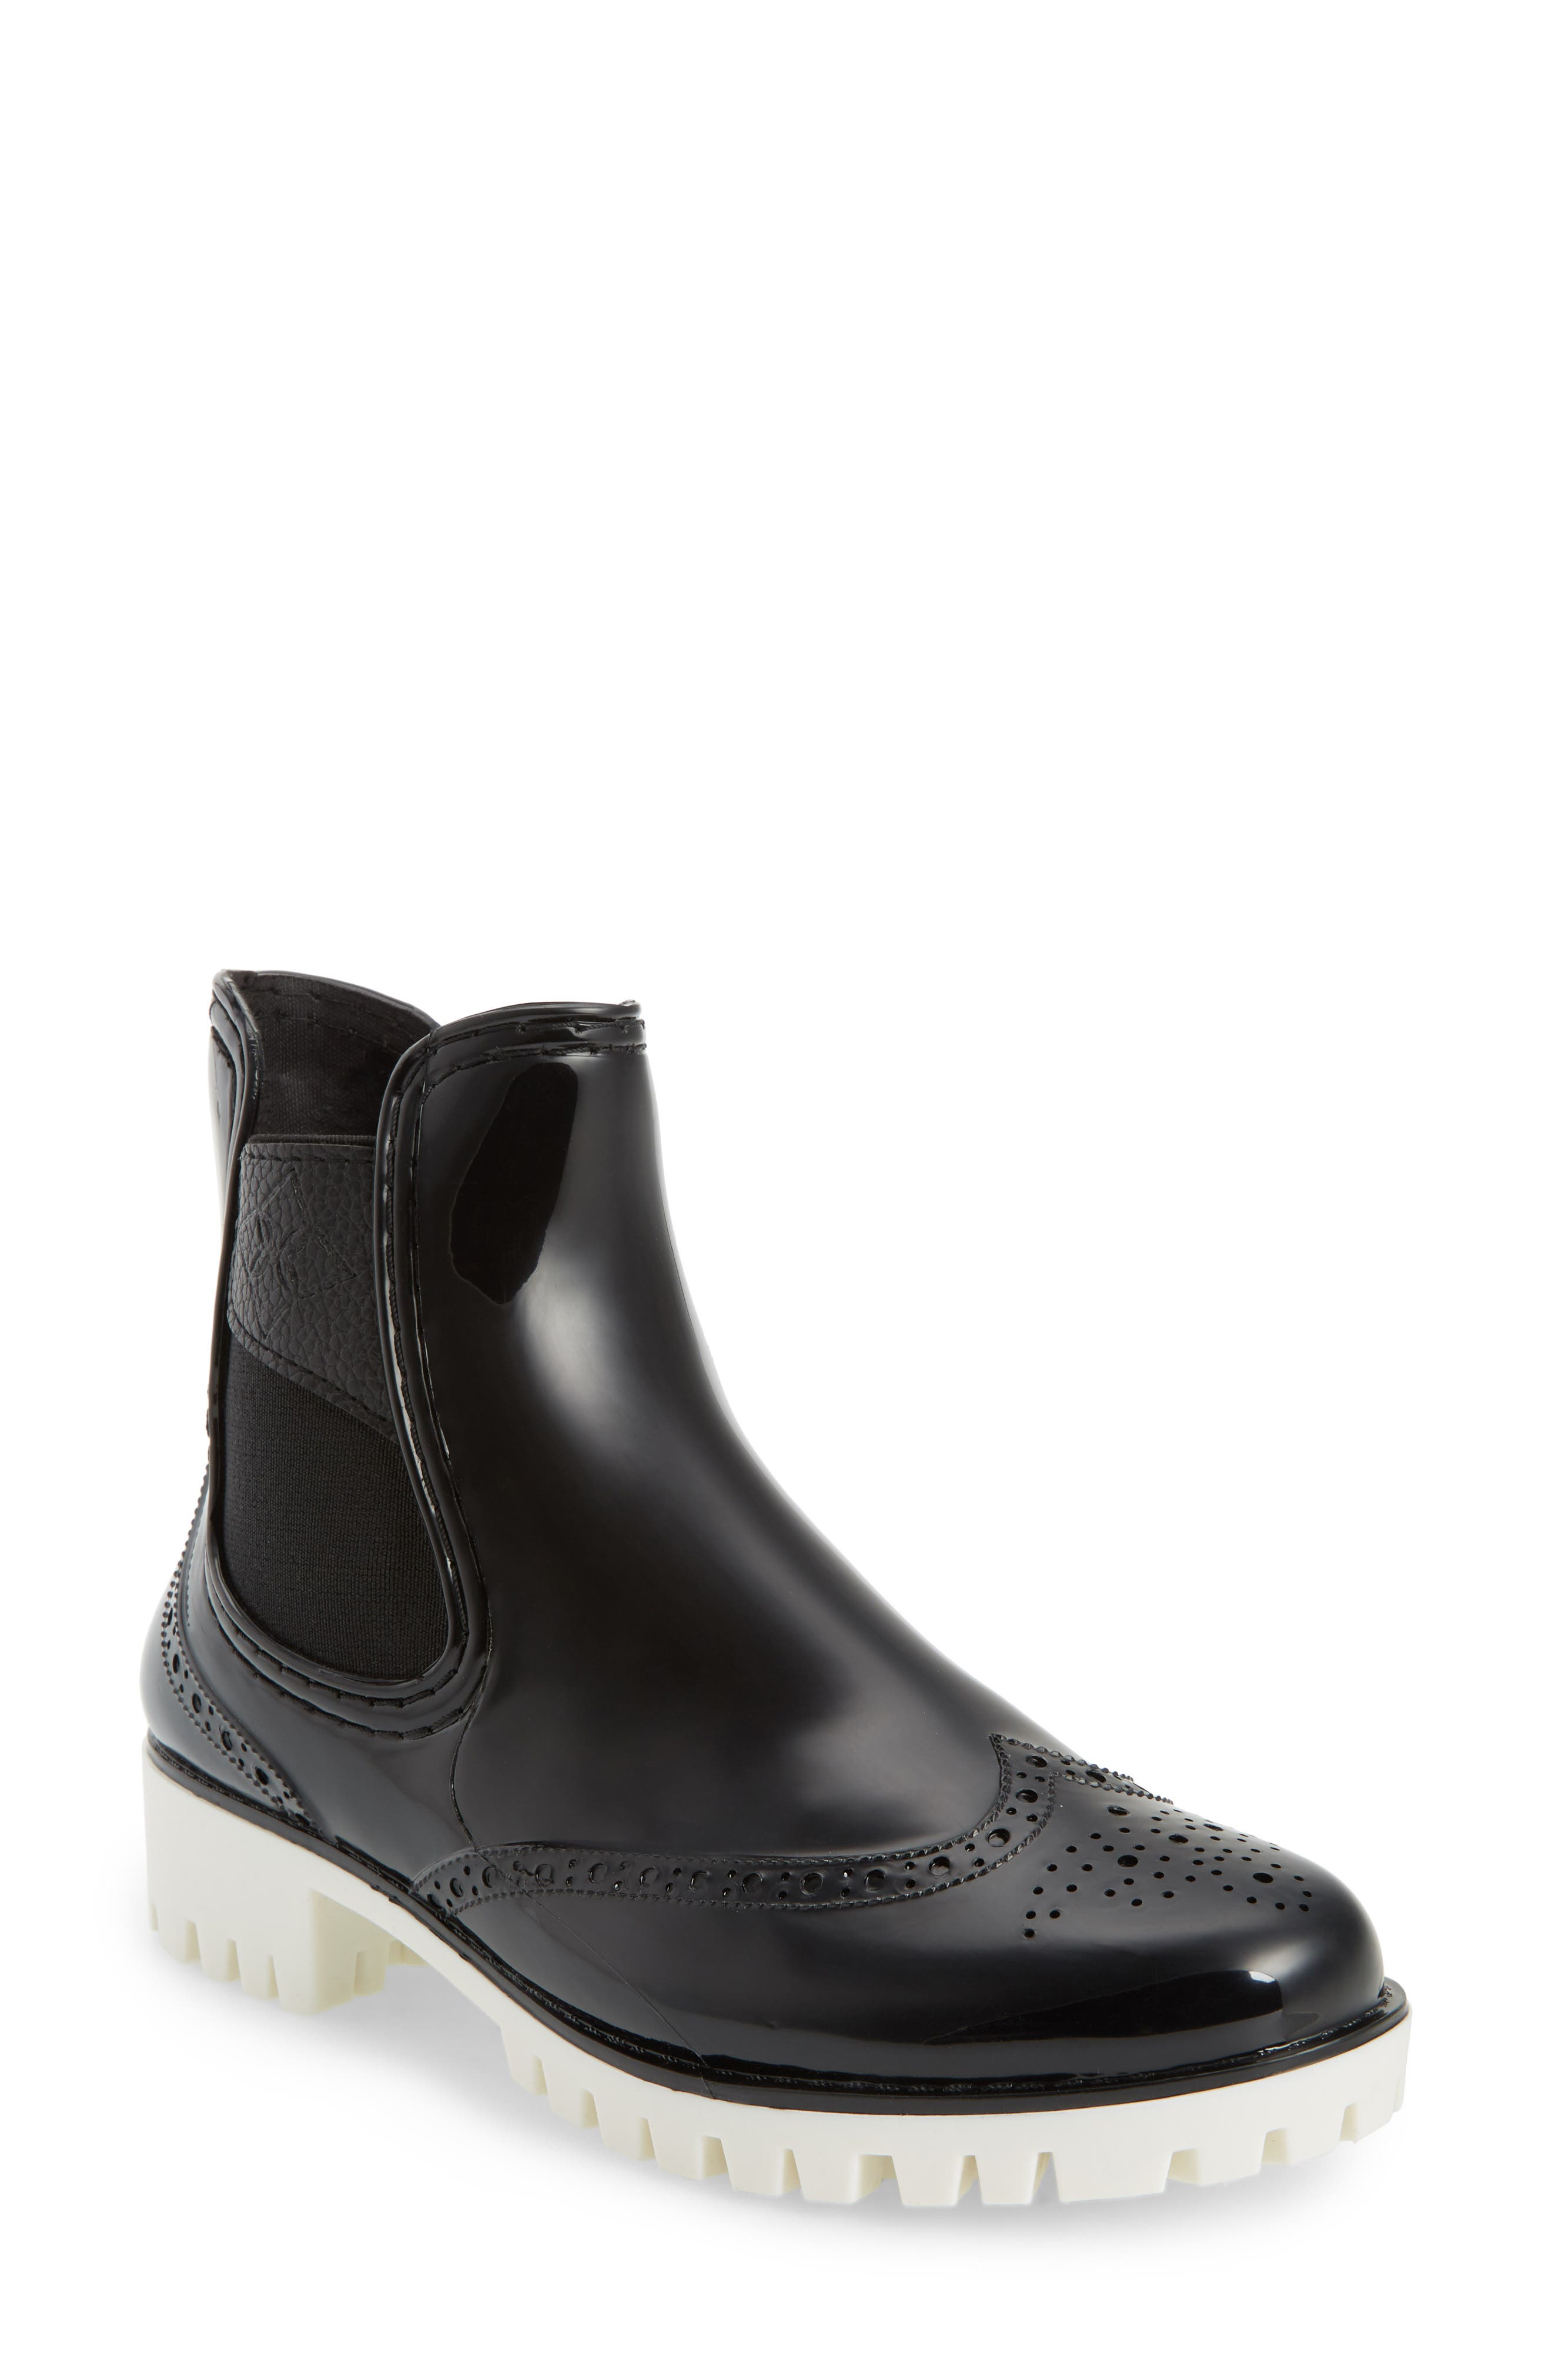 Leeds Brogue Rain Boot,                             Main thumbnail 1, color,                             BLACK